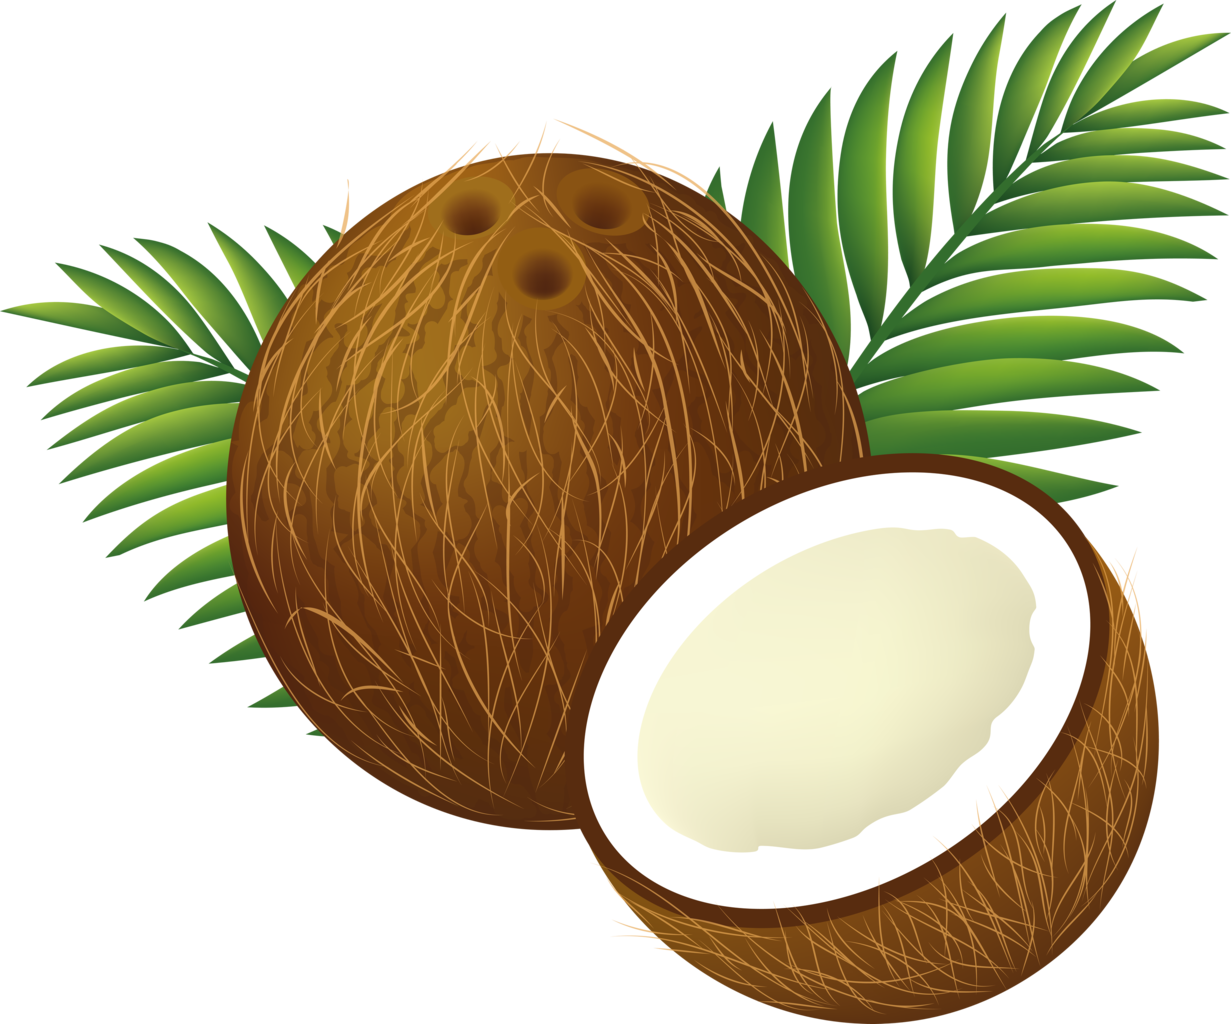 1231x1024 Filecoconut Clipart Cartoon.png